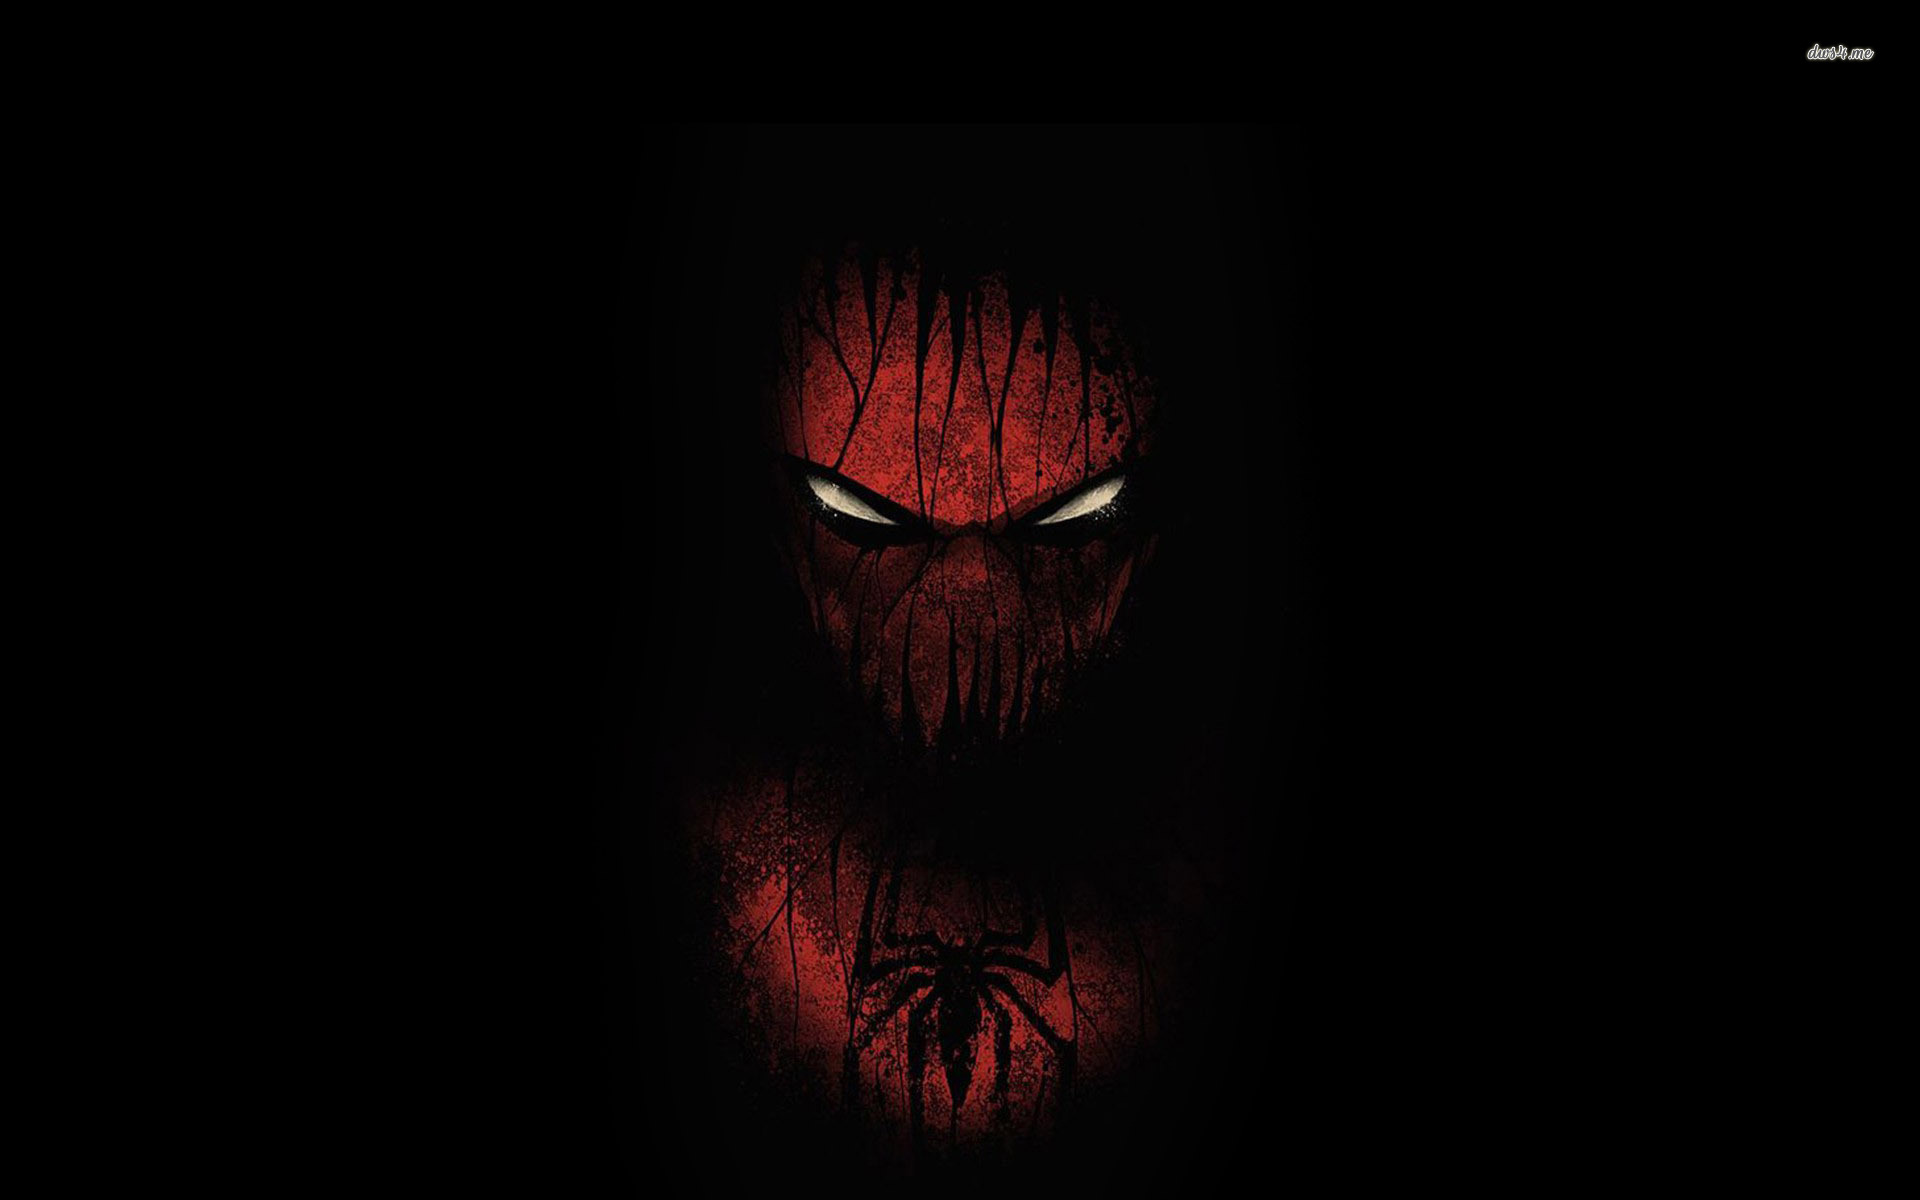 1920x1200 Spiderman Widescreen Image Awesome Backgrounds 1920x1200